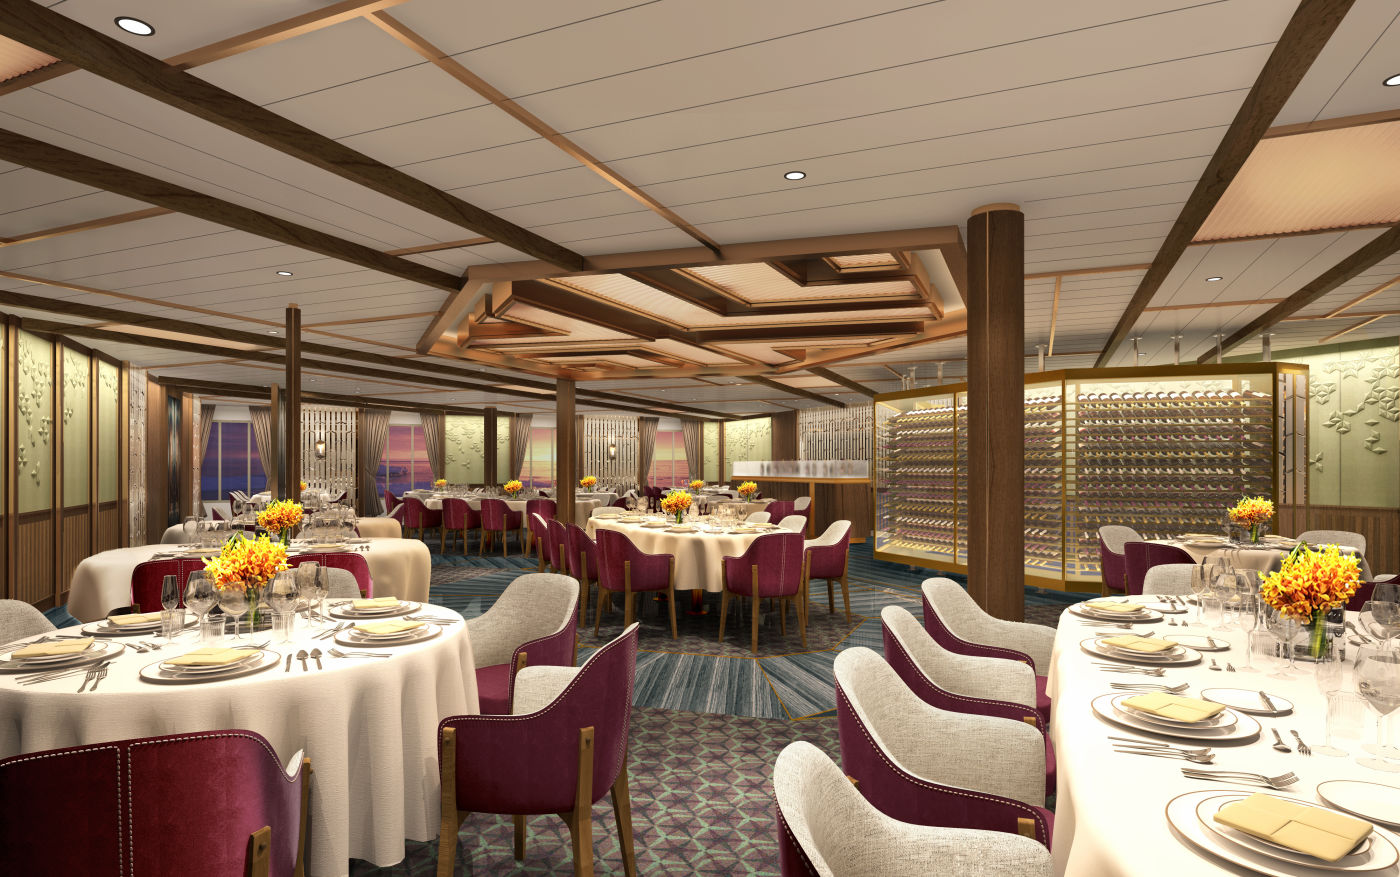 Seabourn expedition ships -The Restaurant rendering